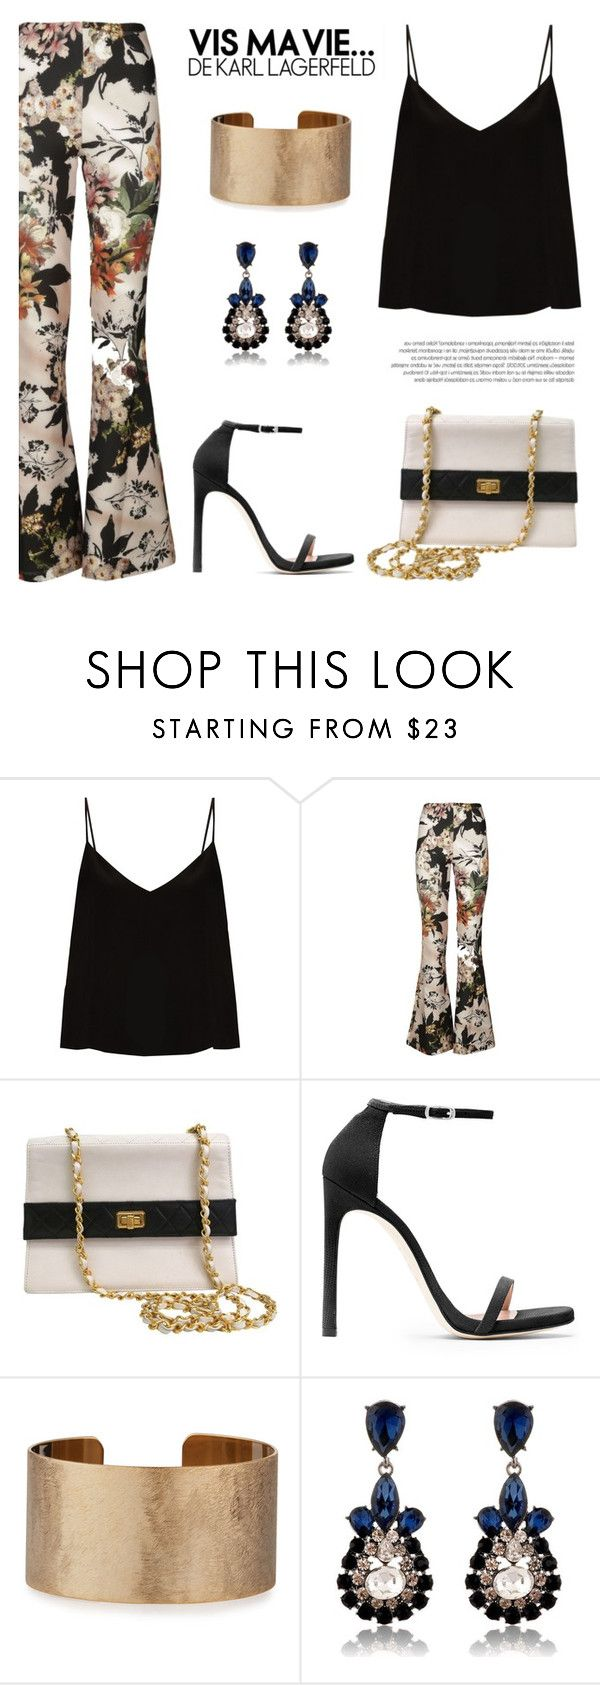 """Floral"" by nadialesa ❤ liked on Polyvore featuring Raey, Black Coral, Chanel, Stuart Weitzman, Panacea, floral and floralprint"